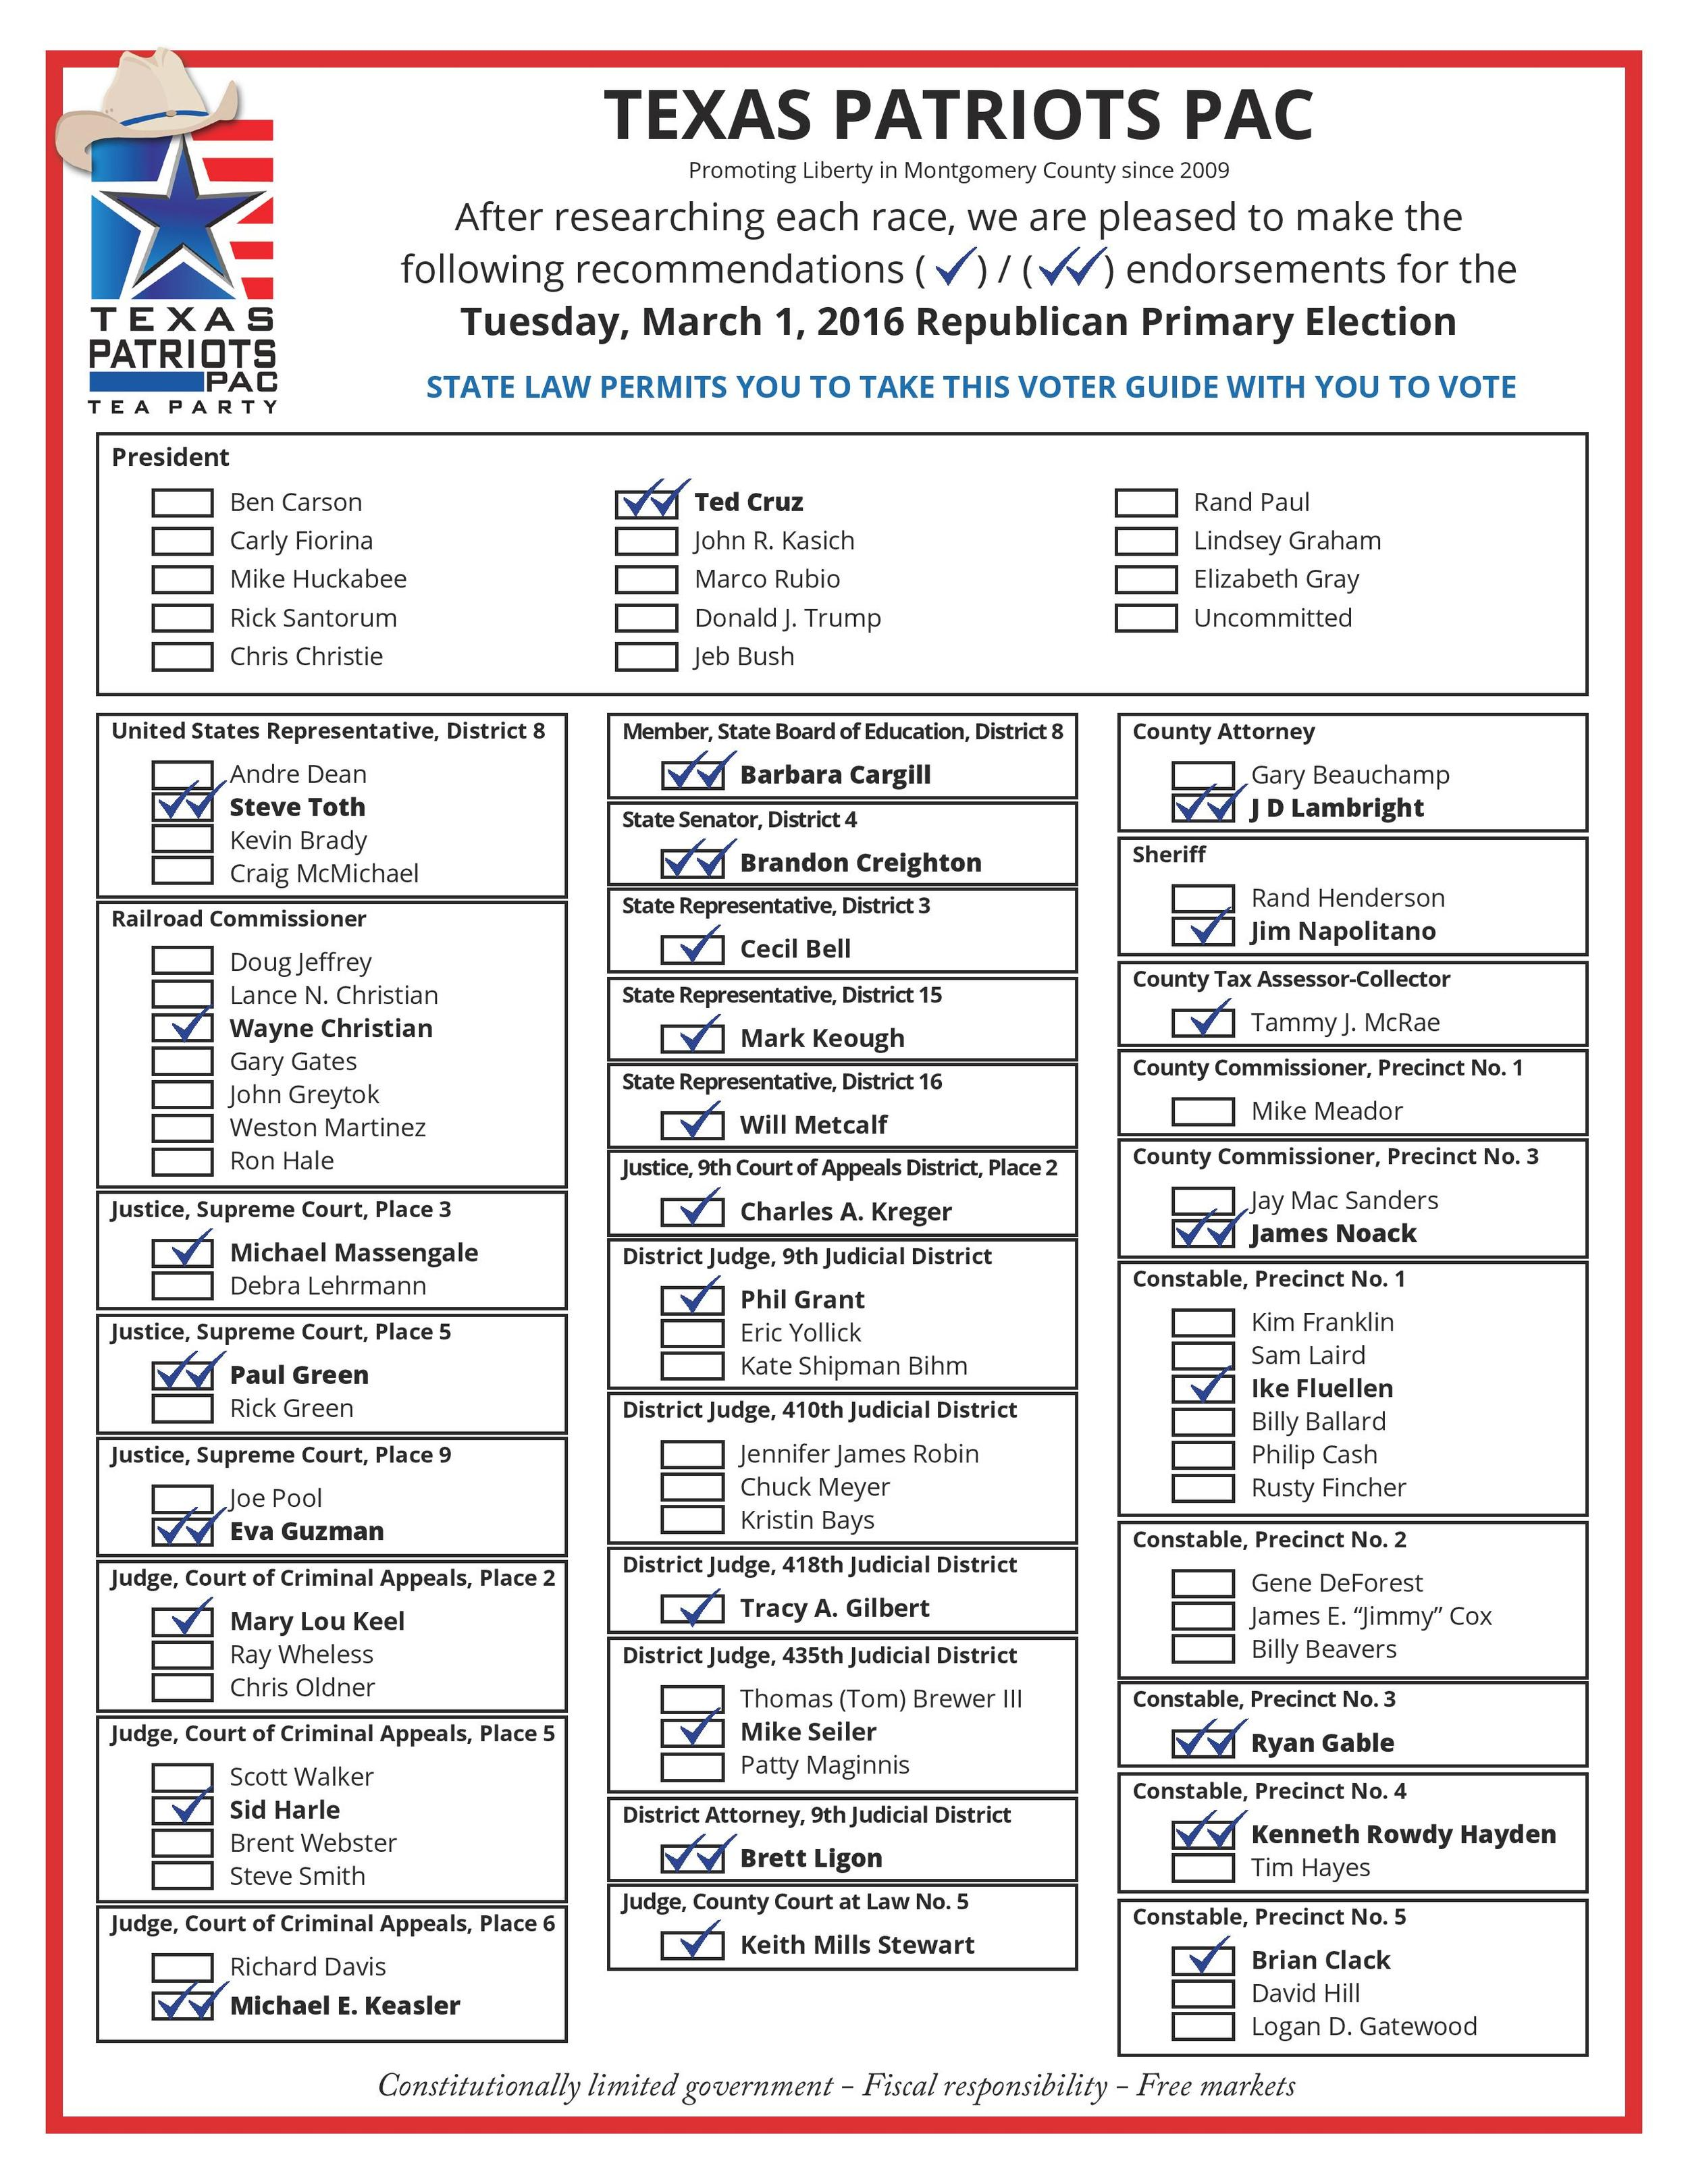 voter-guide-front-page-001.jpg